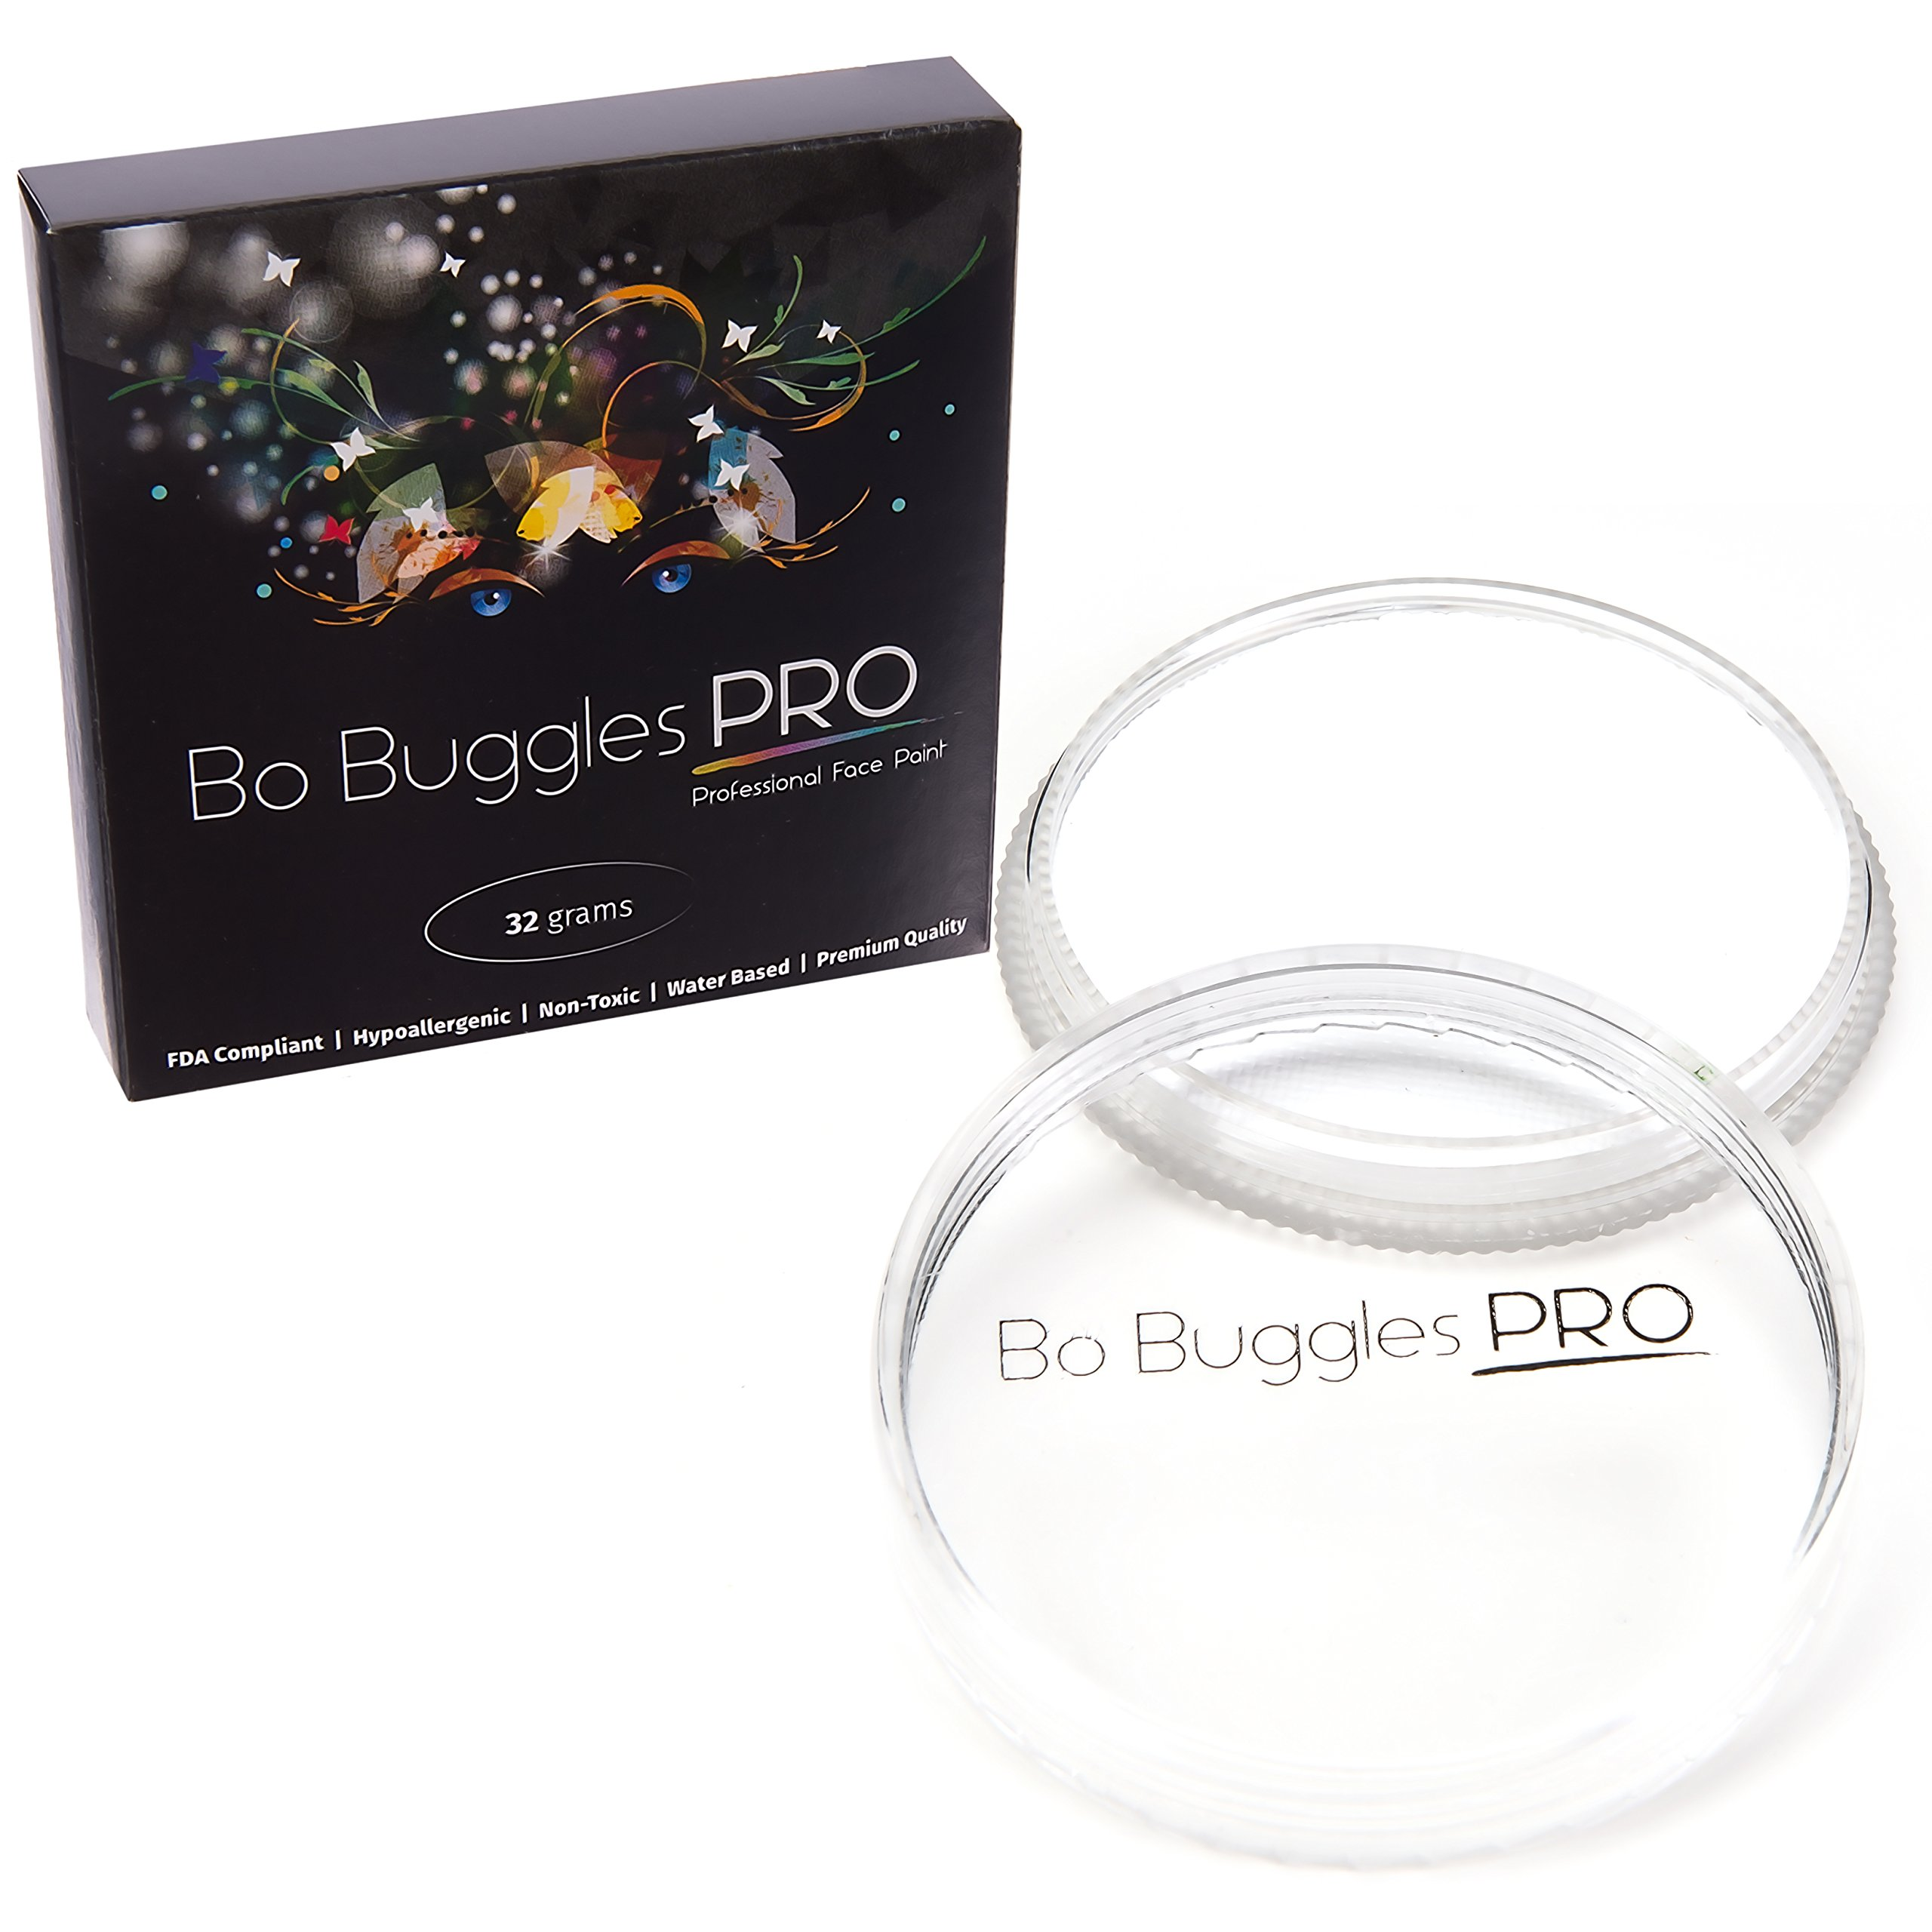 Bo Buggles Professional White 32g Face Paint, Classic Colors, Water Activated